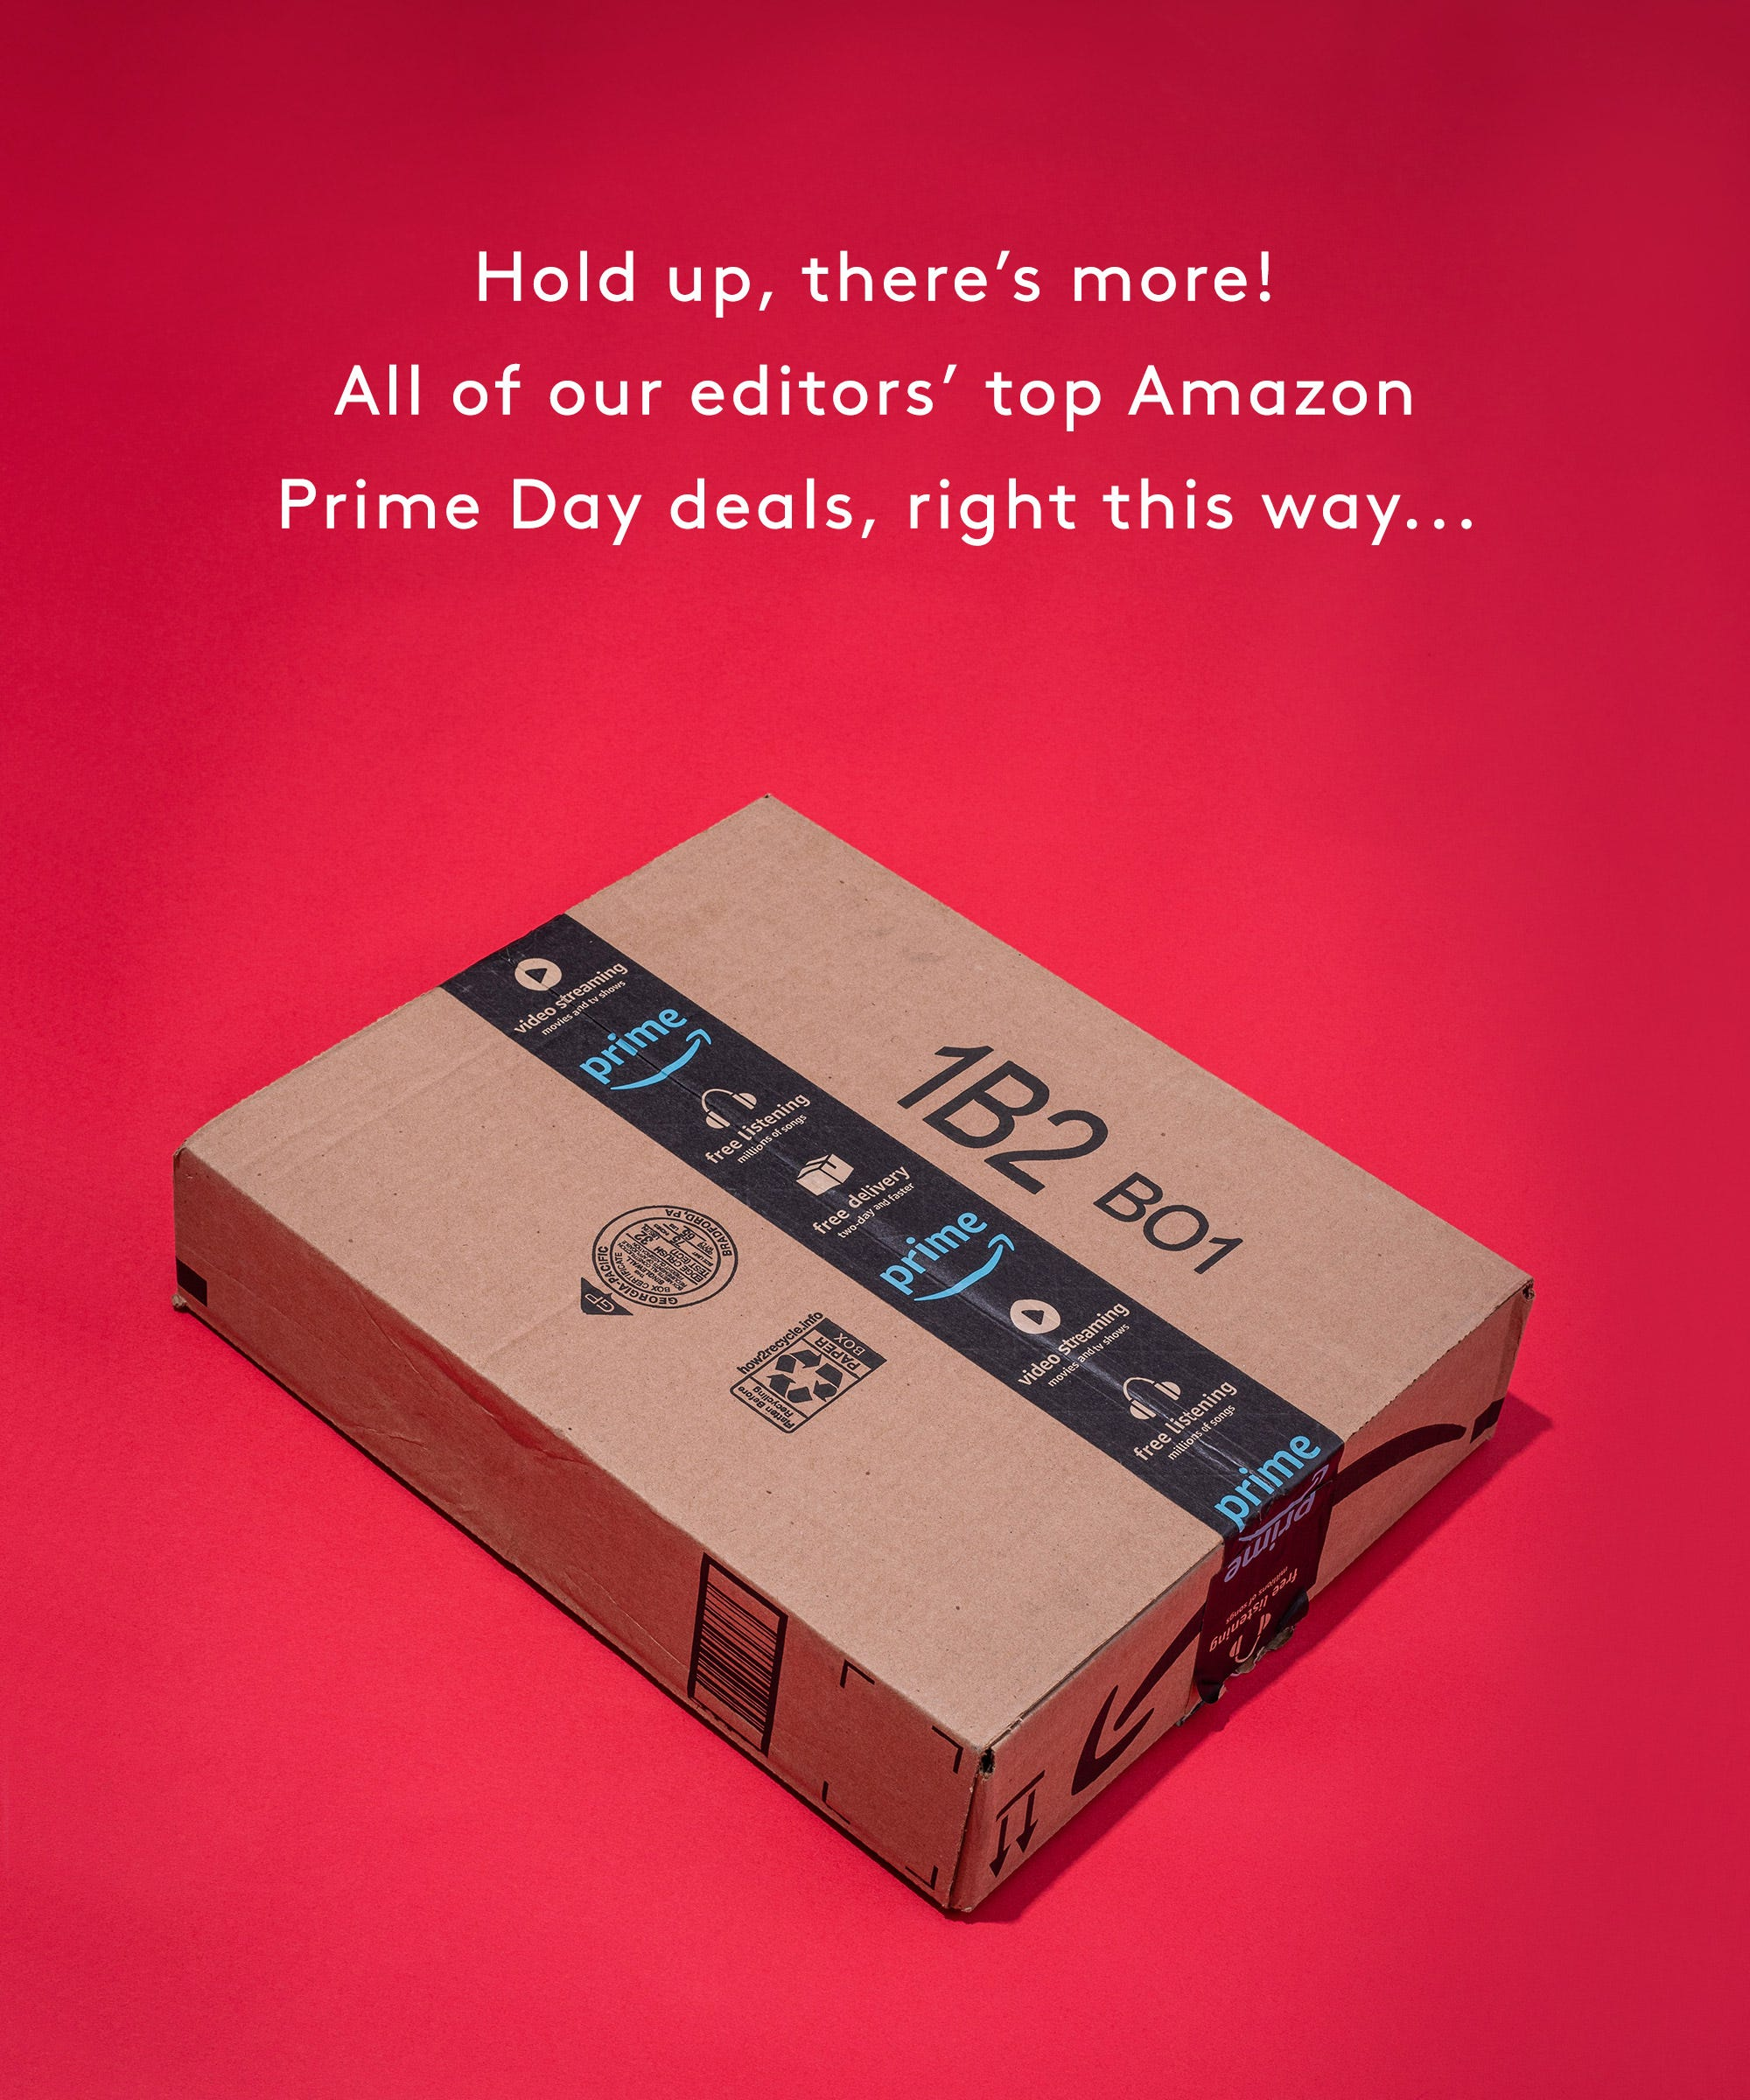 Best Amazon Prime Day Deals 2019 Top-Selling Sale Items